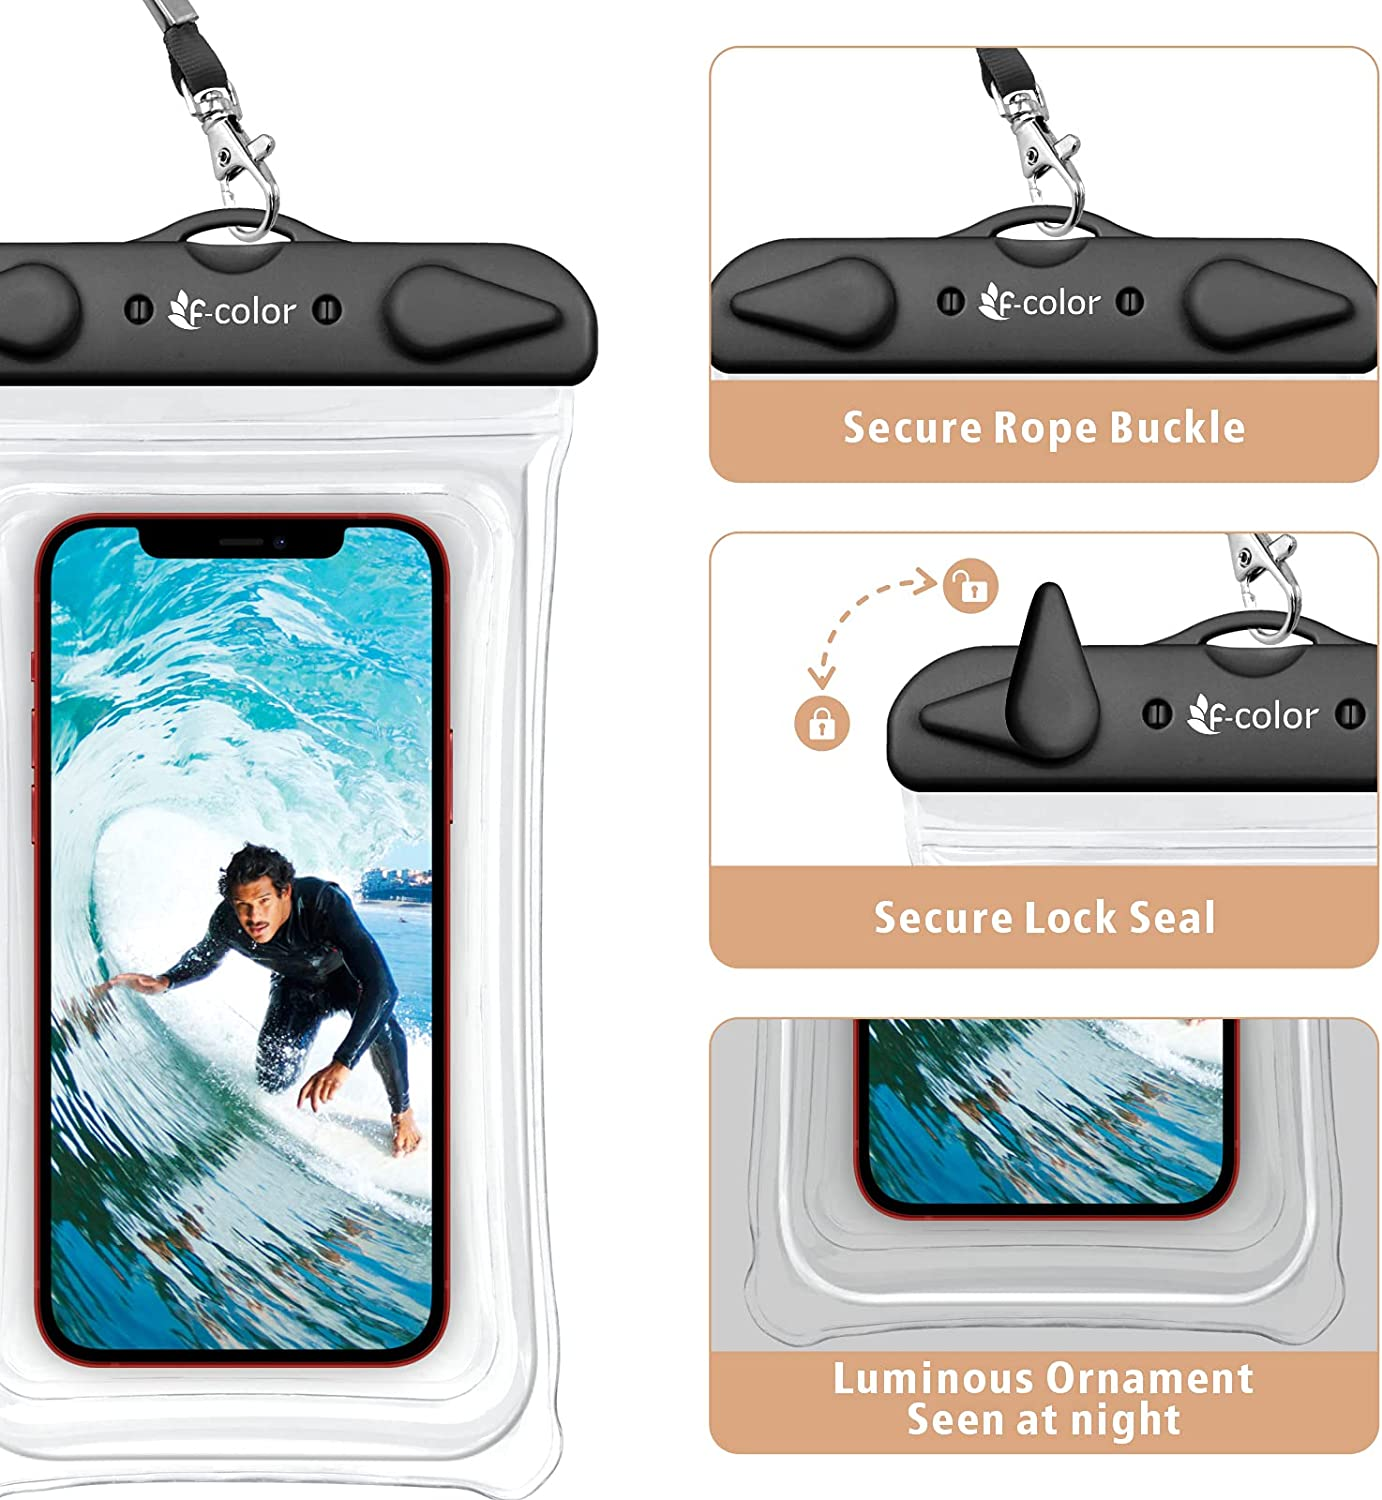 F-color Waterproof Phone Case, 2 Pack Transparent PVC Waterproof Phone Pouch Dry Bag, Beach Accessories for Vacation Kayaking Camping Snorkeling Cruise, Compatible for iPhone 12 Pro Max XR 8 7 Galaxy